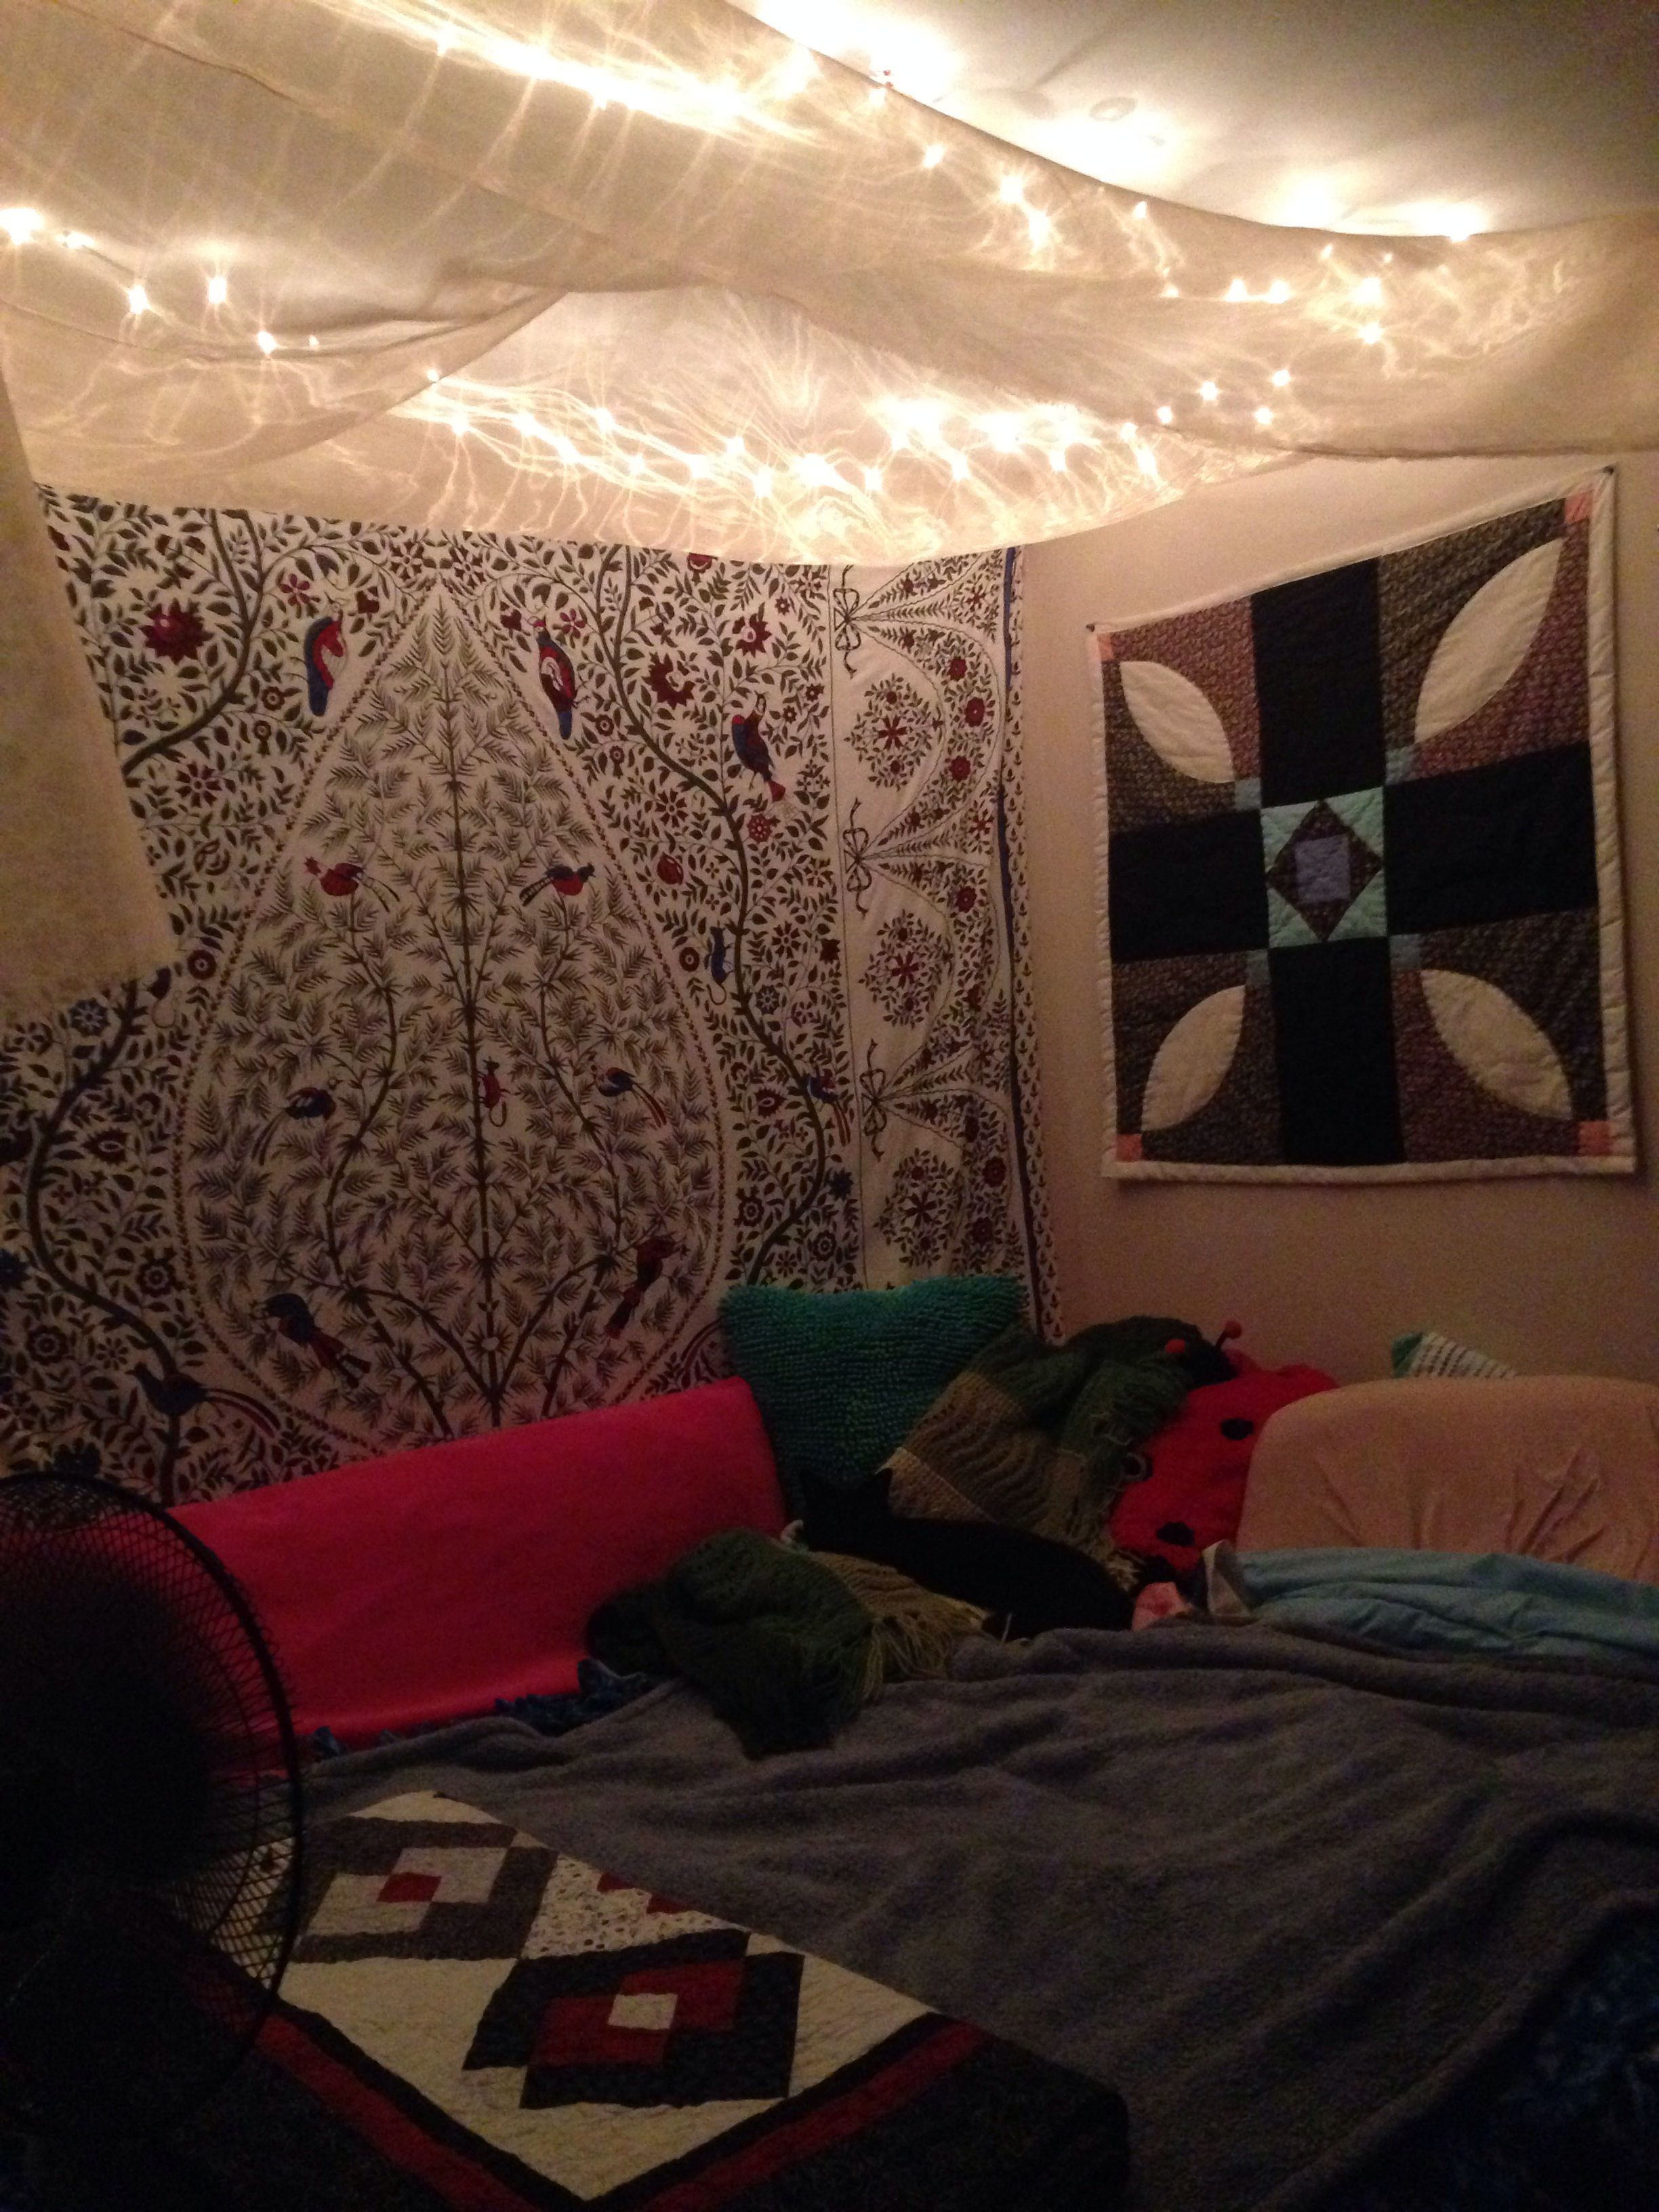 Urban outfitters bedroom tapestry -  Canopy With Christmas Lights Kitty On The Bed And Urban Outfitters Tapestry